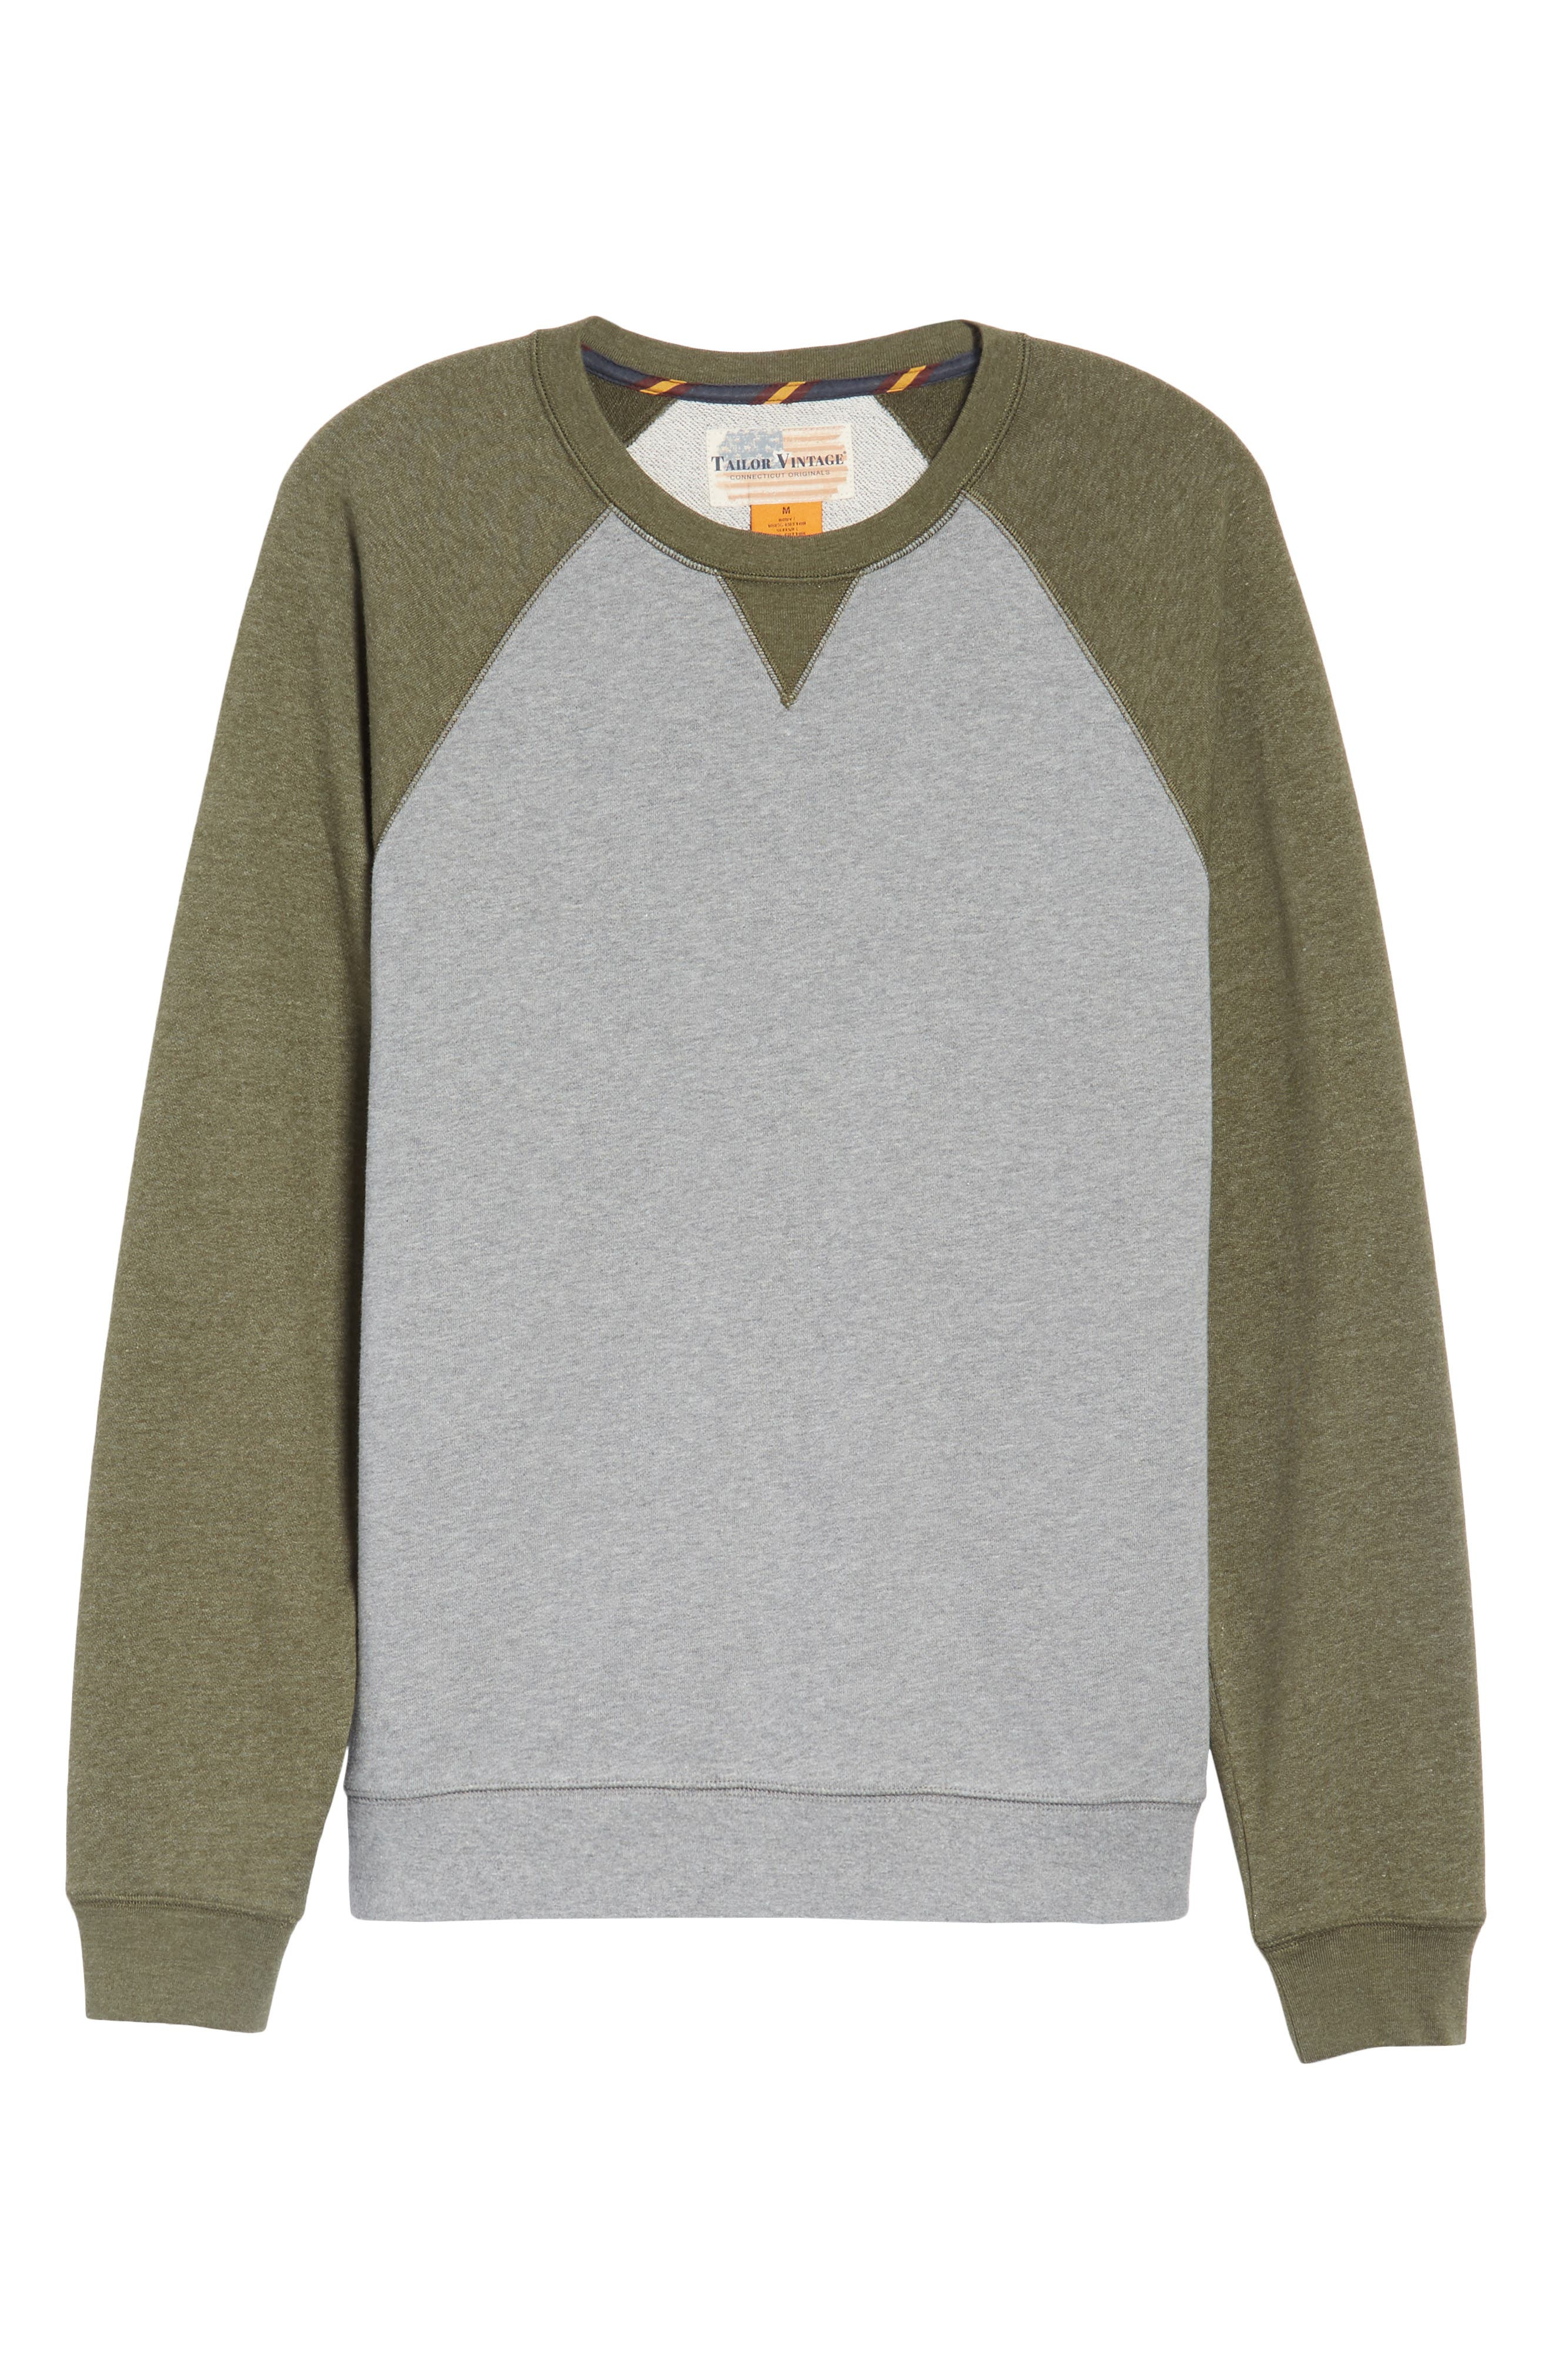 Colorblock French Terry Sweatshirt,                             Alternate thumbnail 6, color,                             Med Grey Army Heather